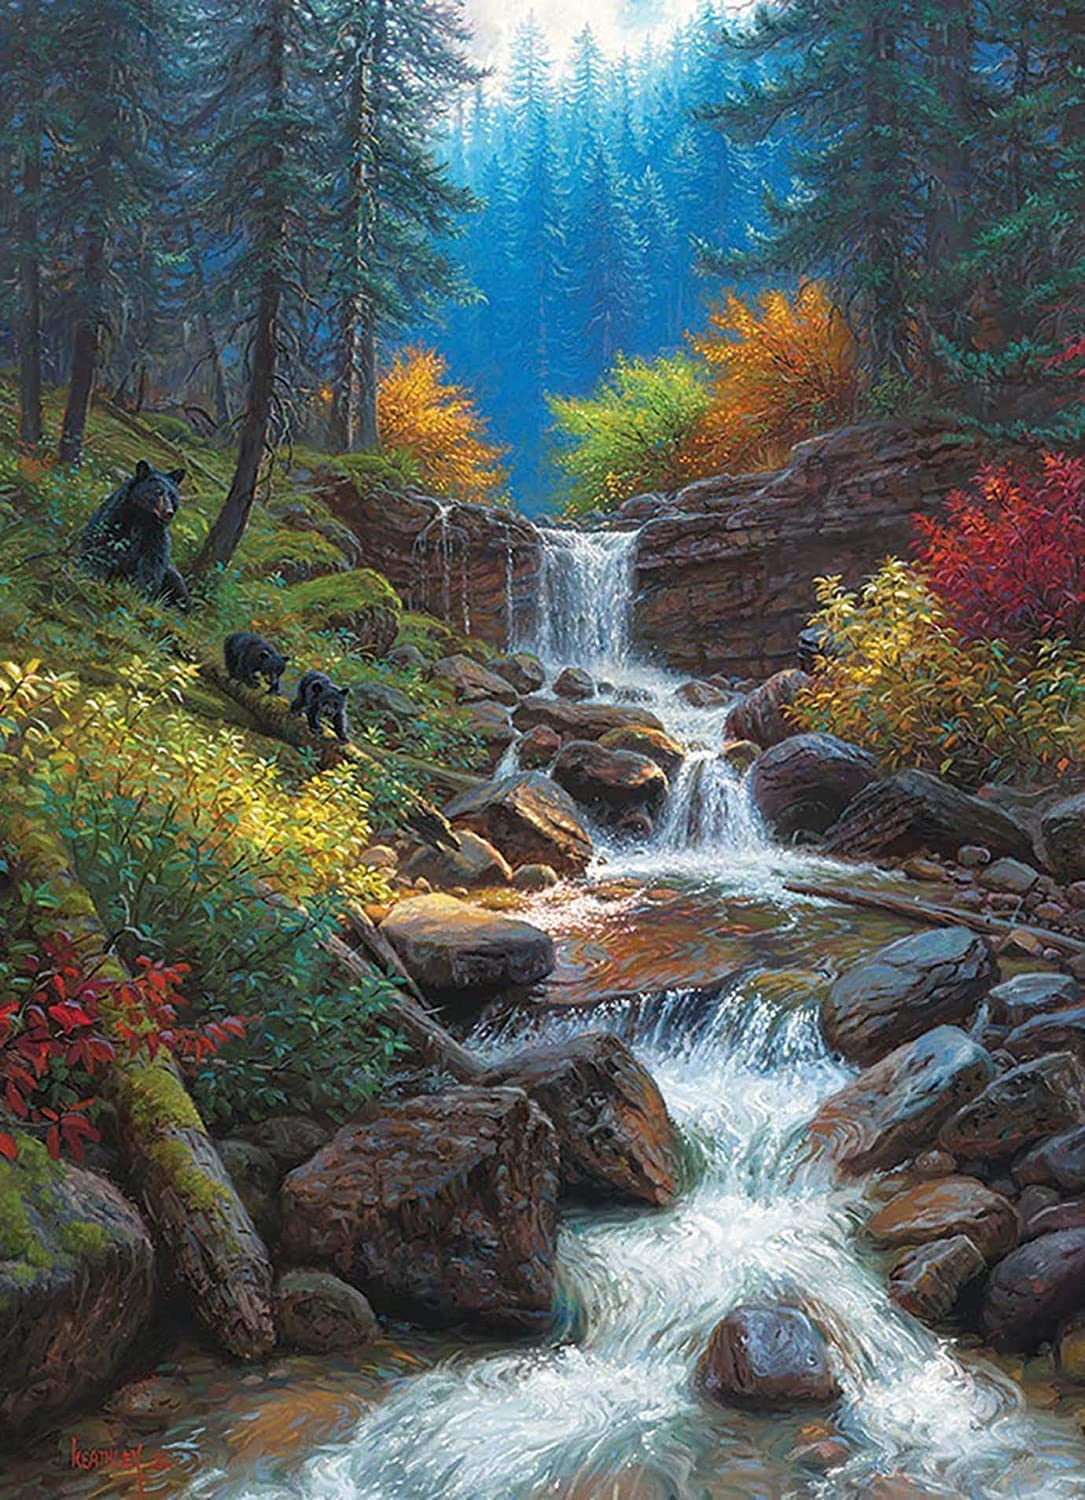 5D Diamond Painting Landscape, Paint with Diamonds DIY Diamond Art Forest Woods Streams, Diymood Painting by Number Kits Full Drill Rhinestone for Home Wall Decor 12x16inch